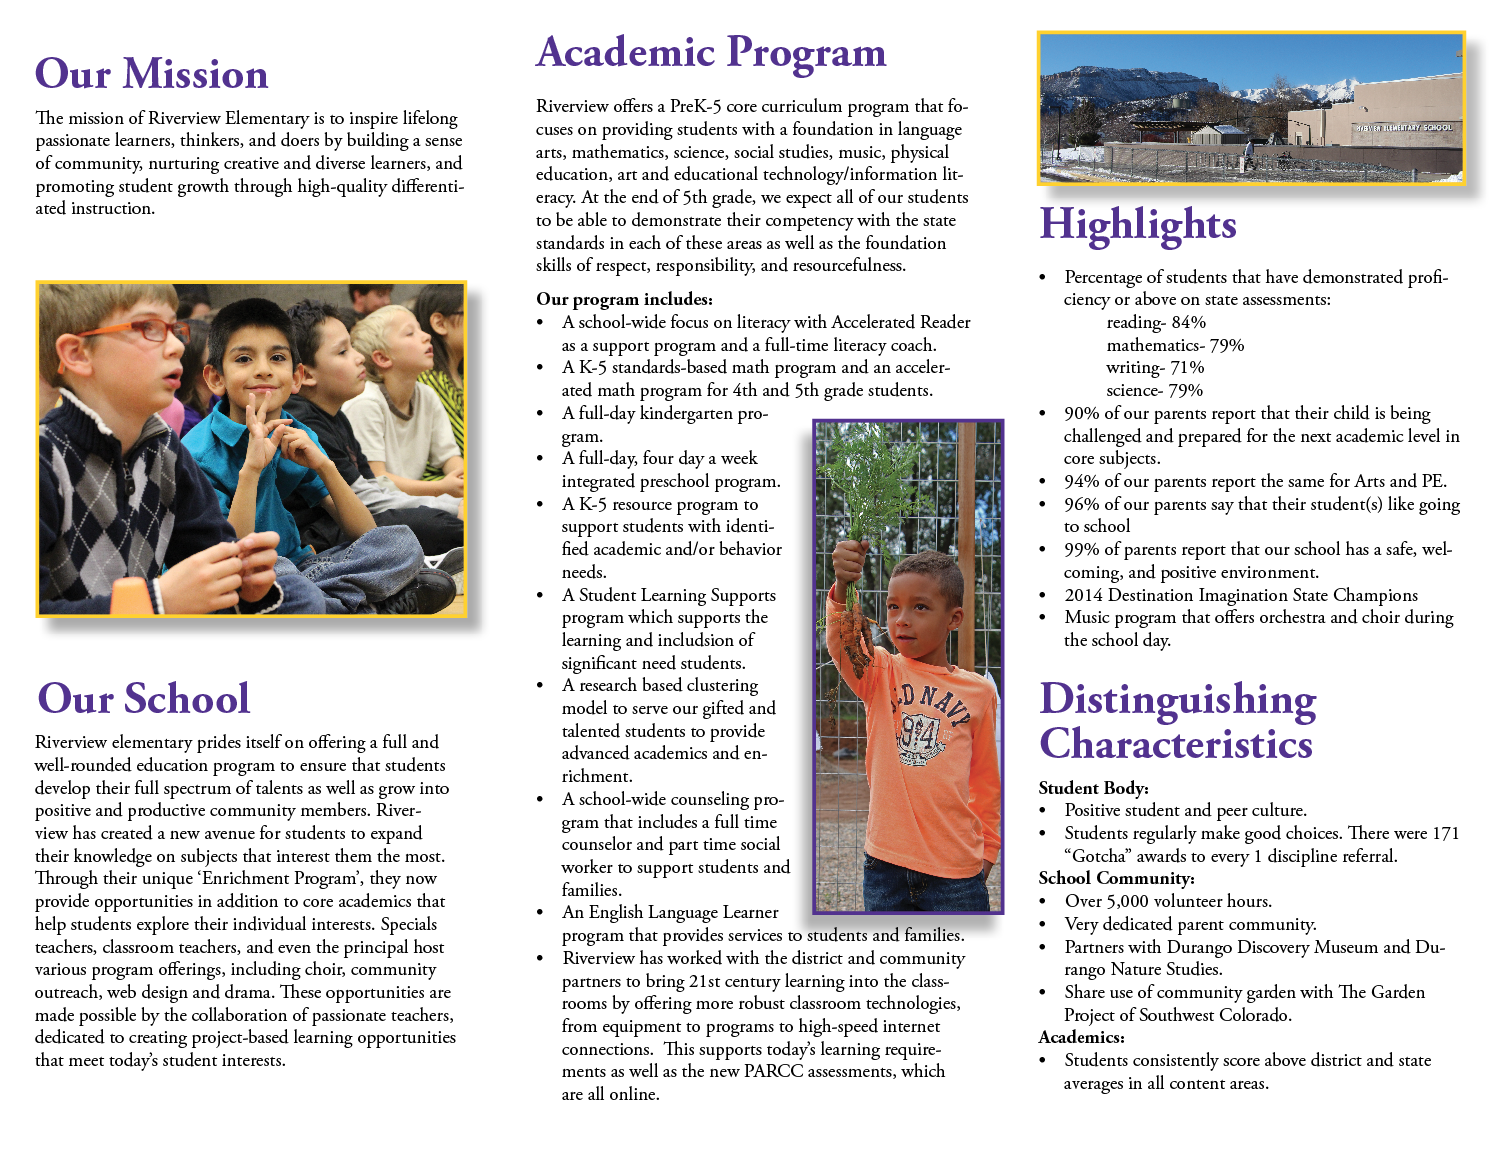 Screenshot of the inside of the Riverview Elementary brochure.